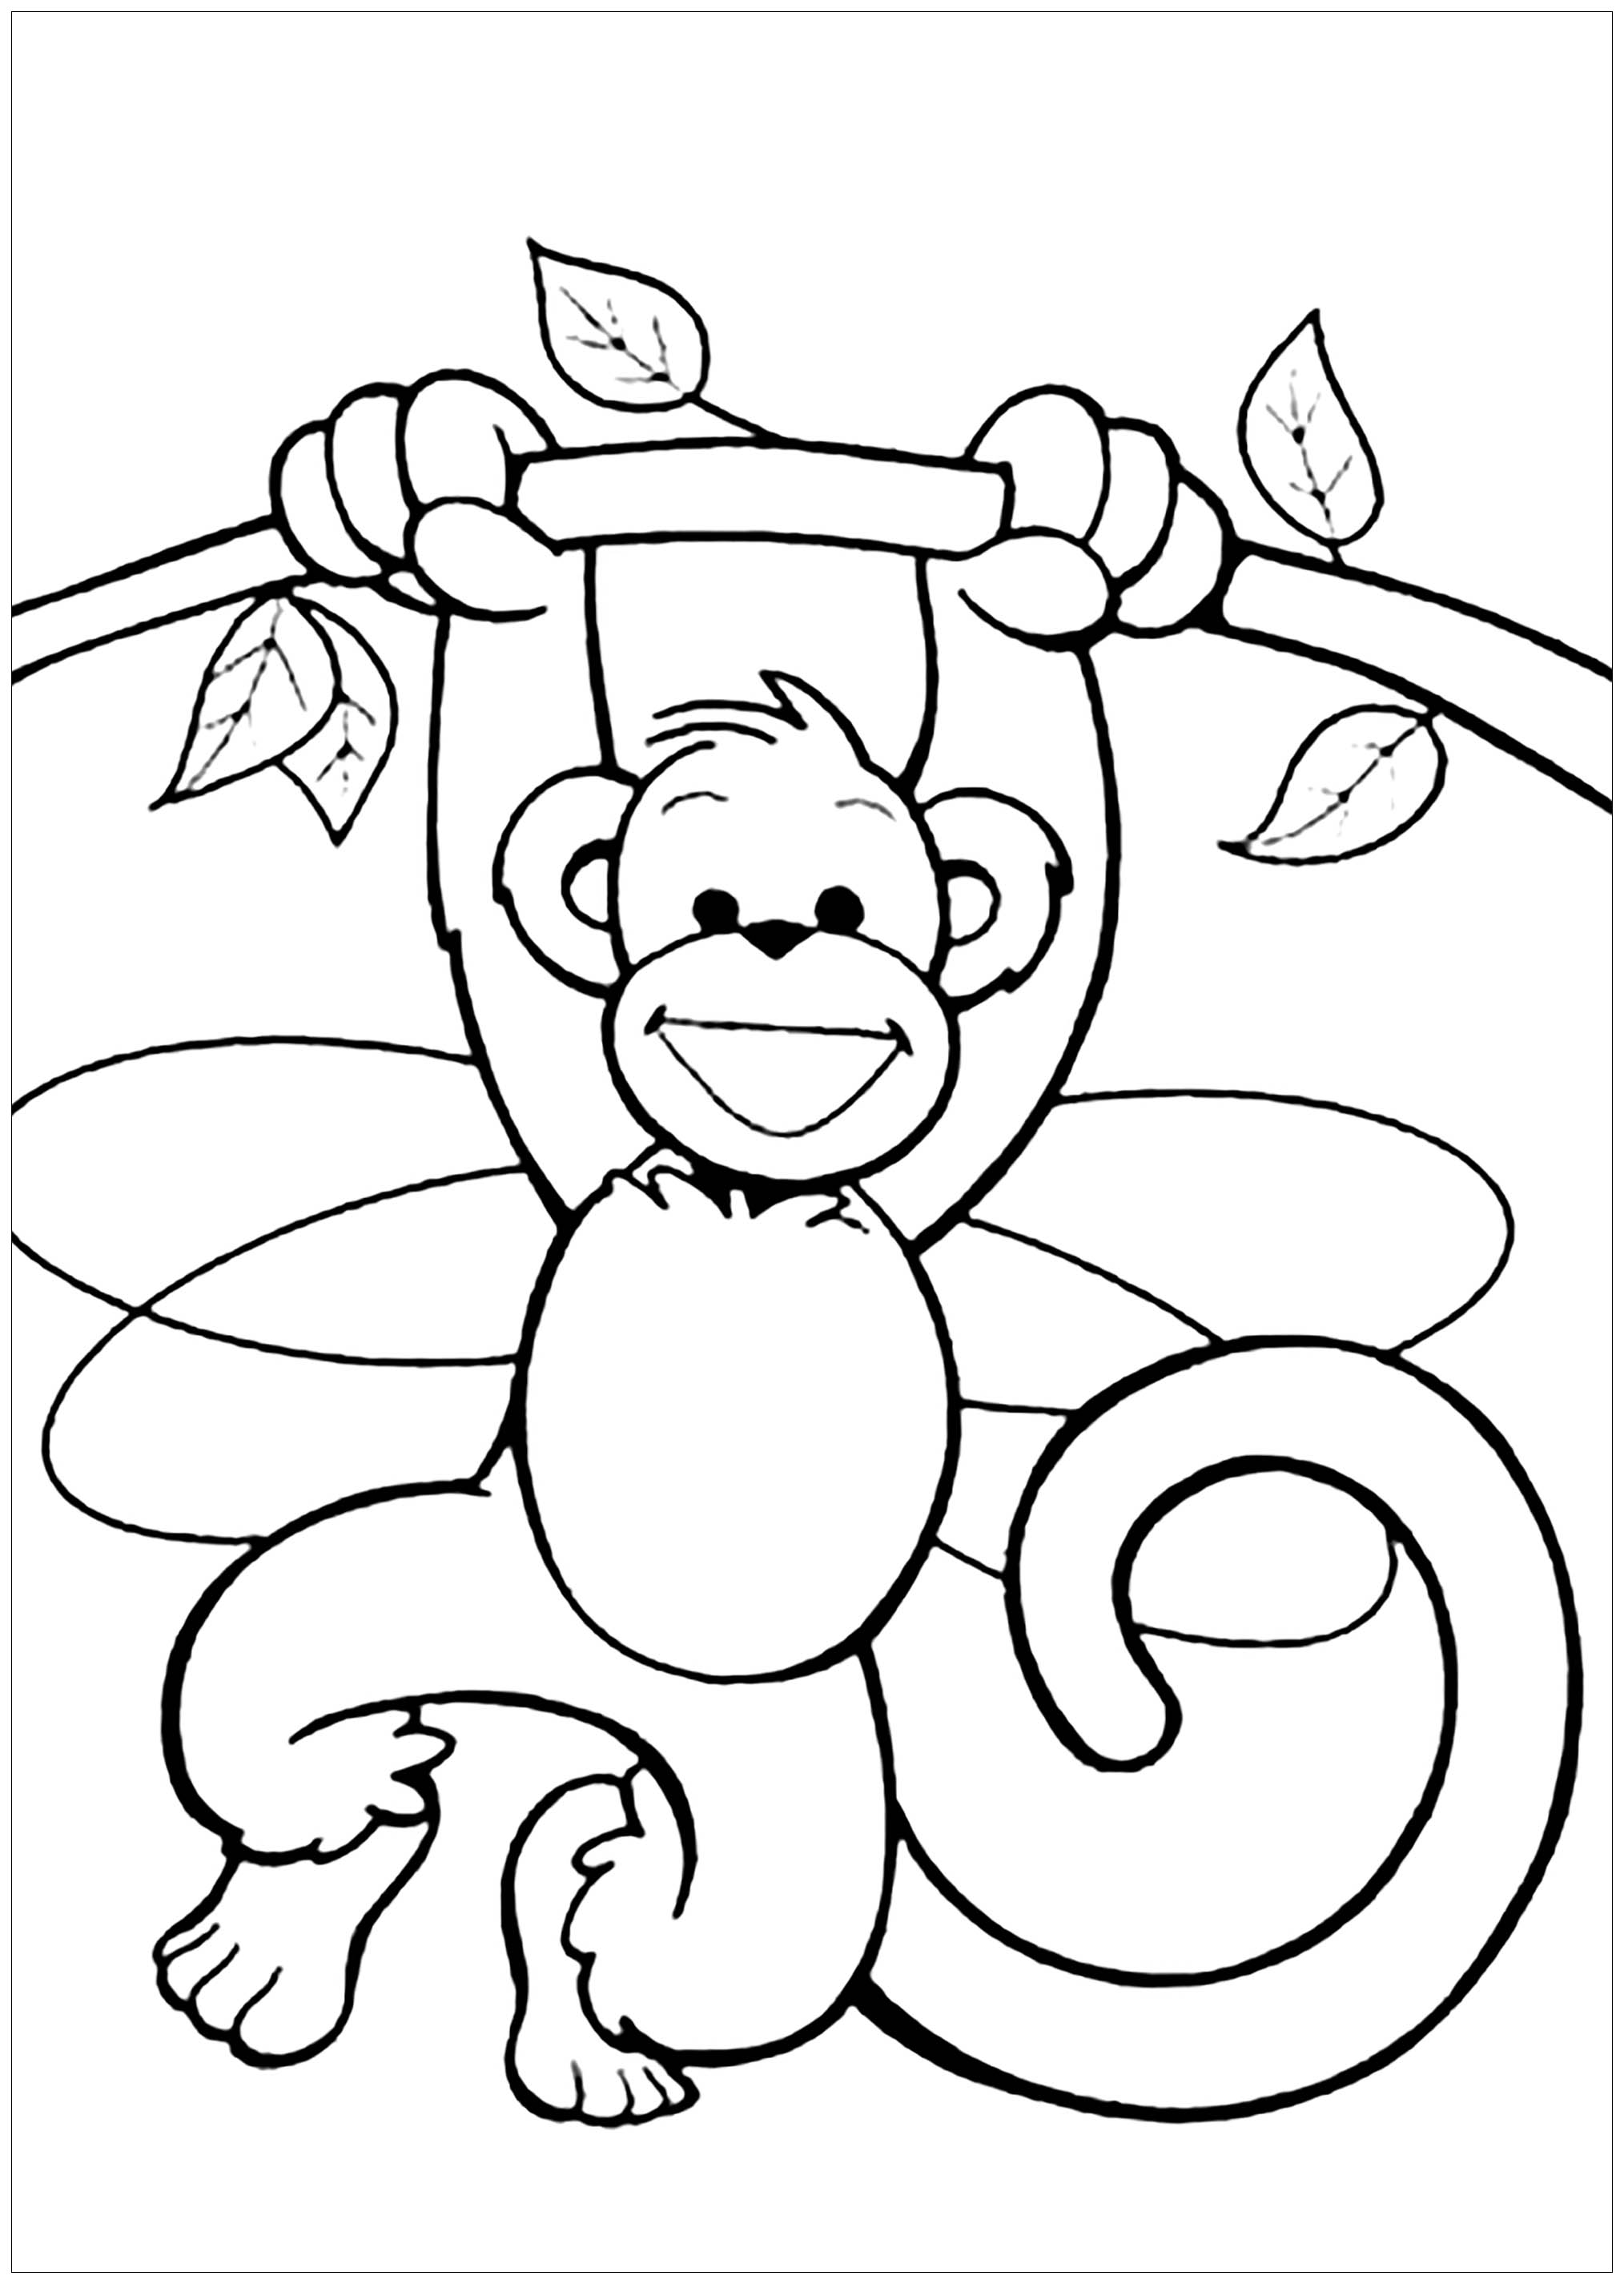 Monkeys to download for free - Monkeys Kids Coloring Pages